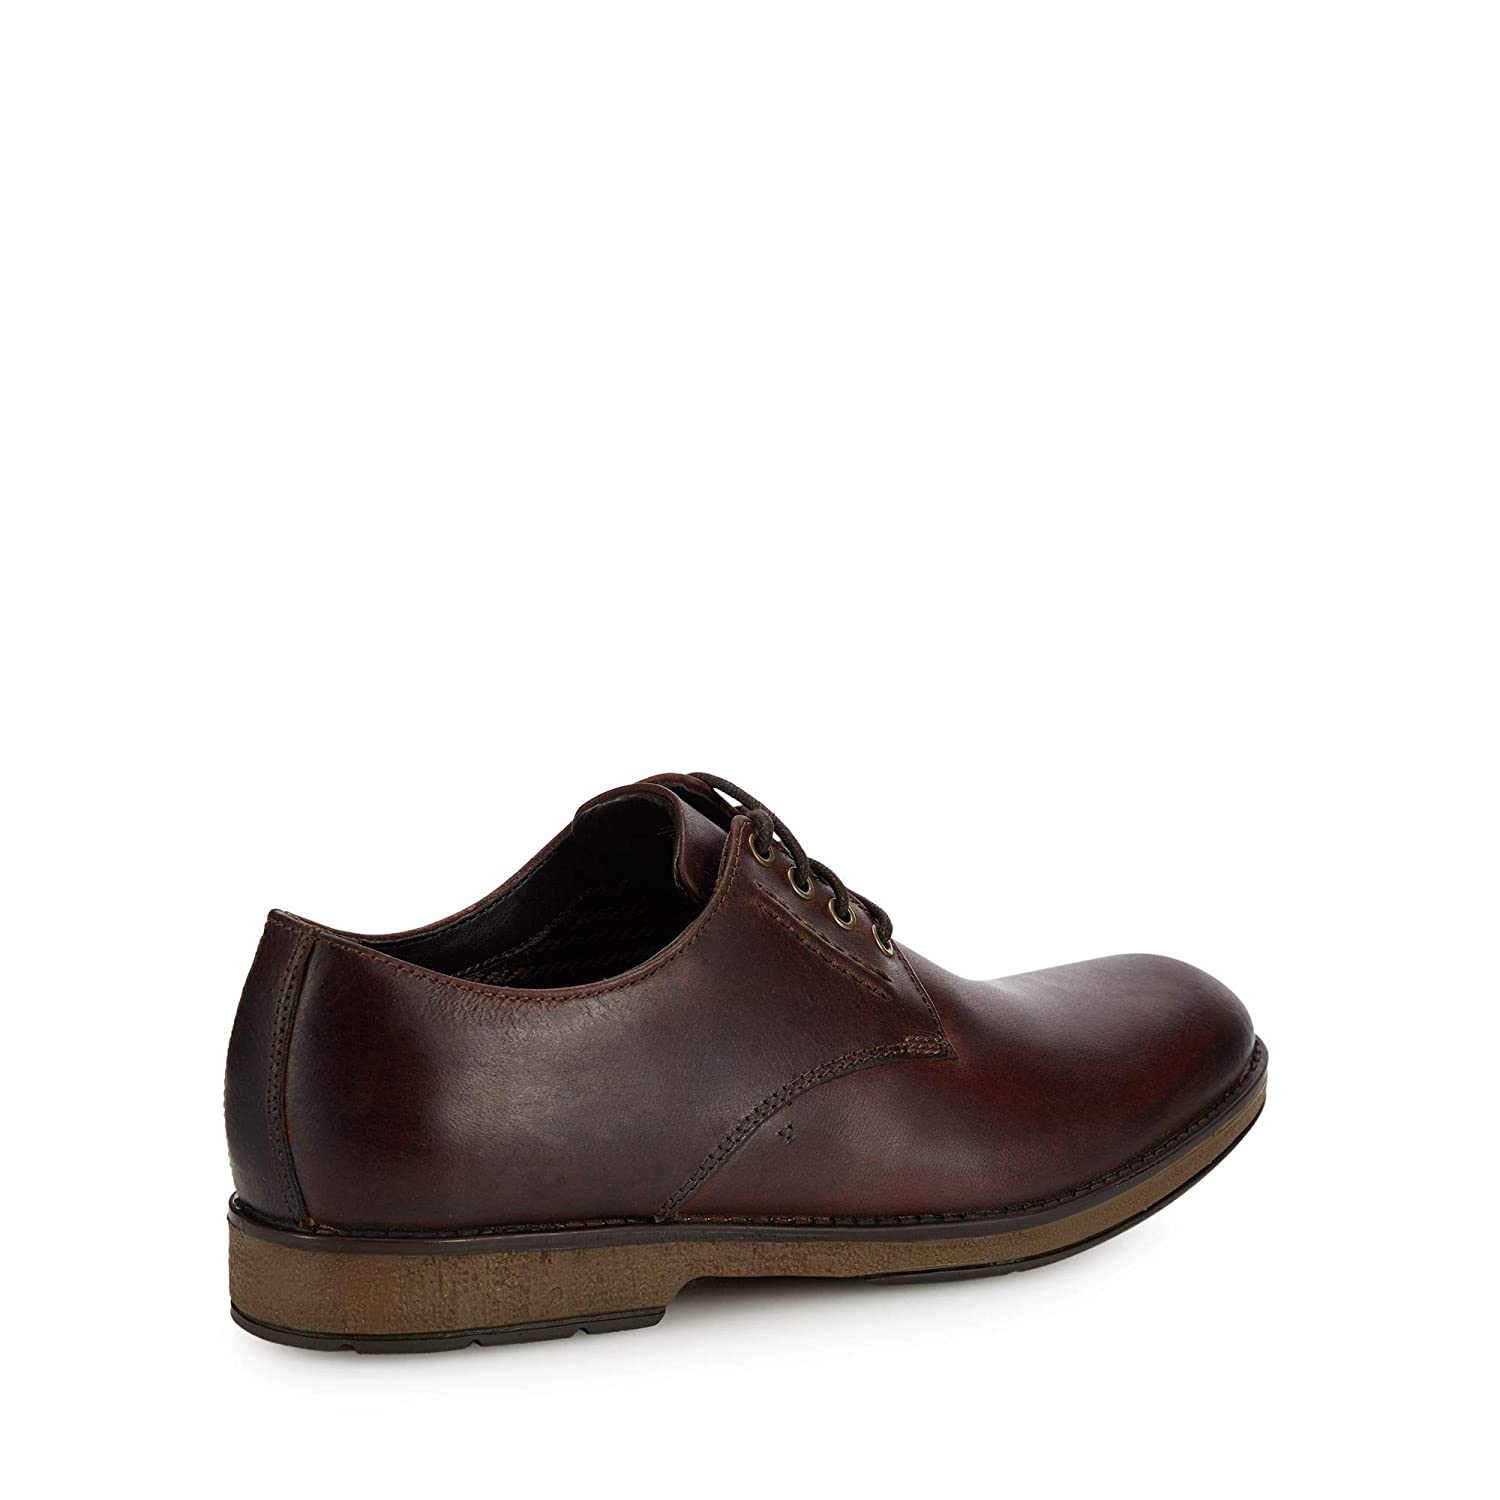 5b30554ed3b9 Clarks Men Brown Leather  Hinman  Lace Up Shoes  Amazon.co.uk  Shoes   Bags